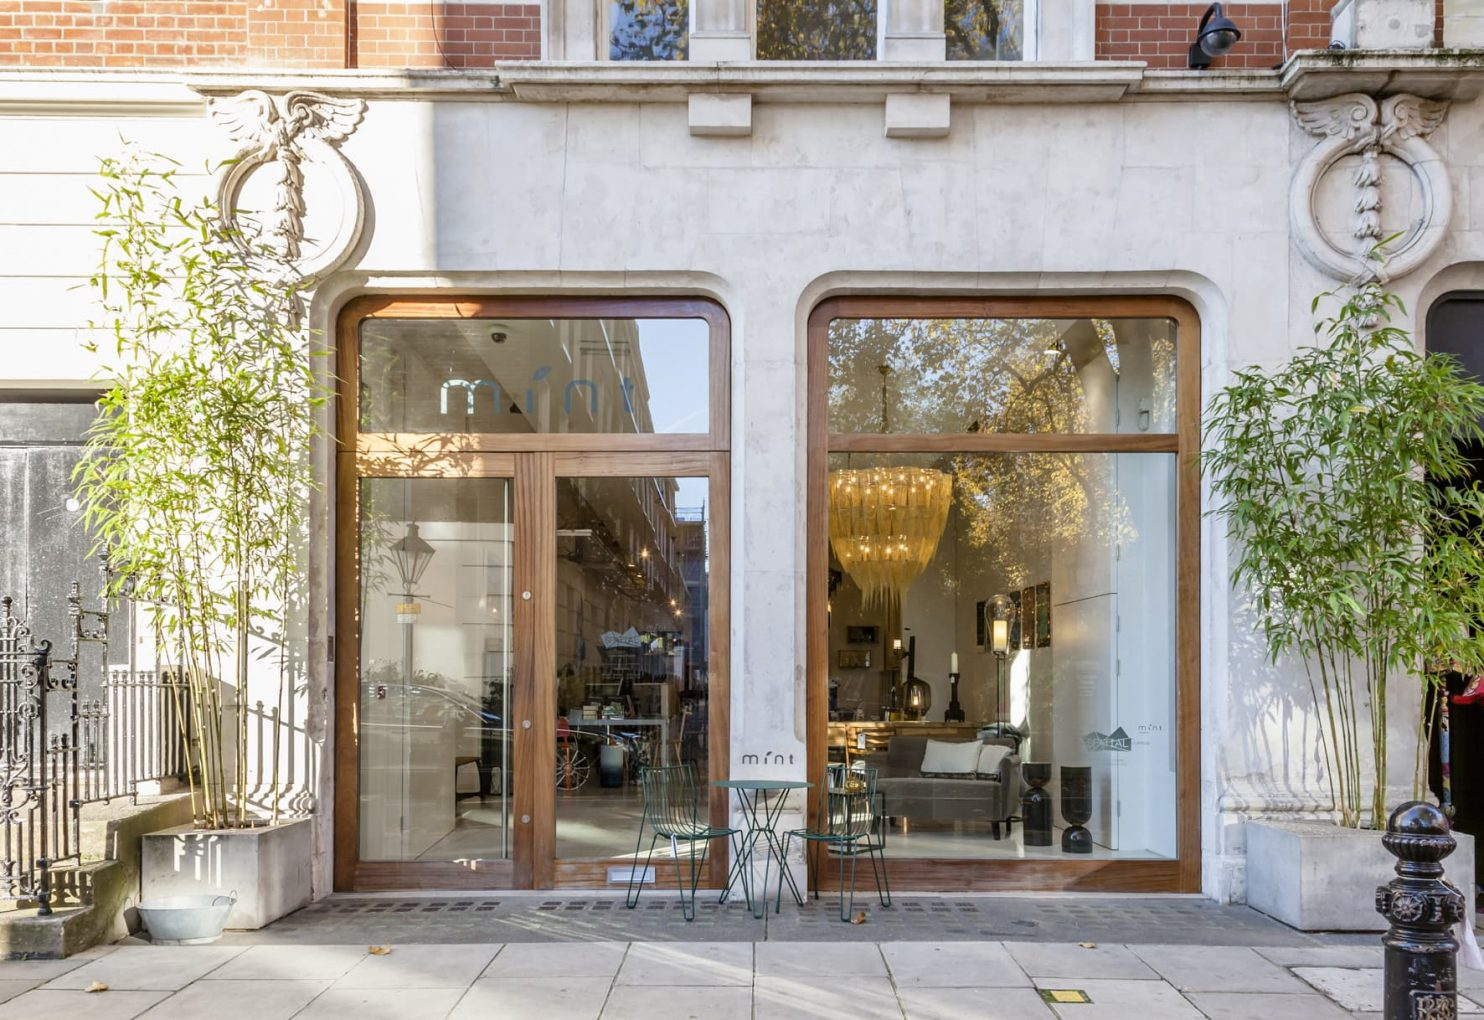 design shops 5 Design Shops to Visit in London! mint nov12 products 153 min